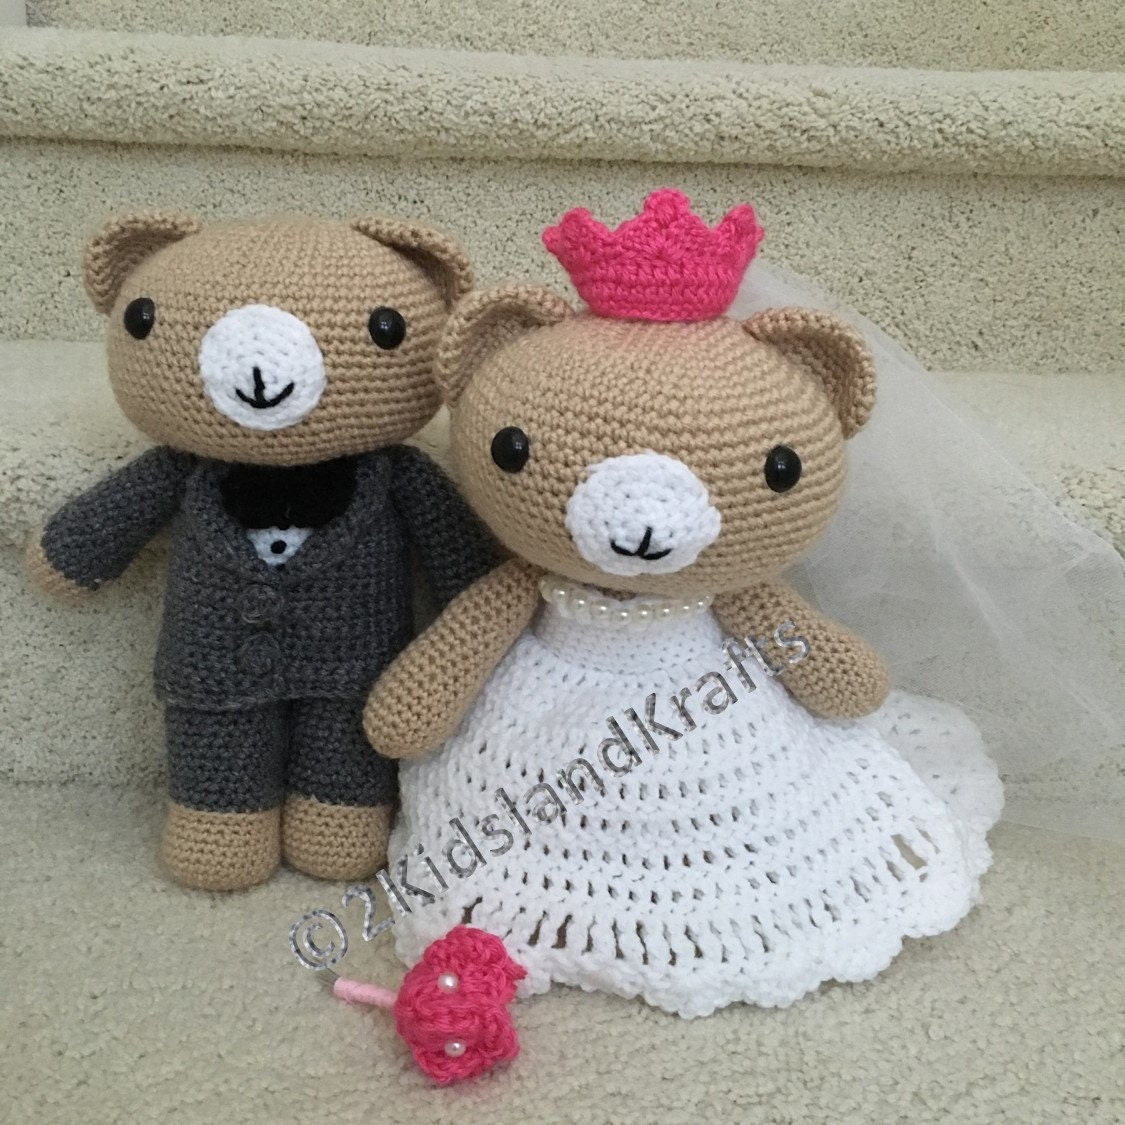 Crochet Wedding Gifts Patterns: Crochet Wedding Bear Couple